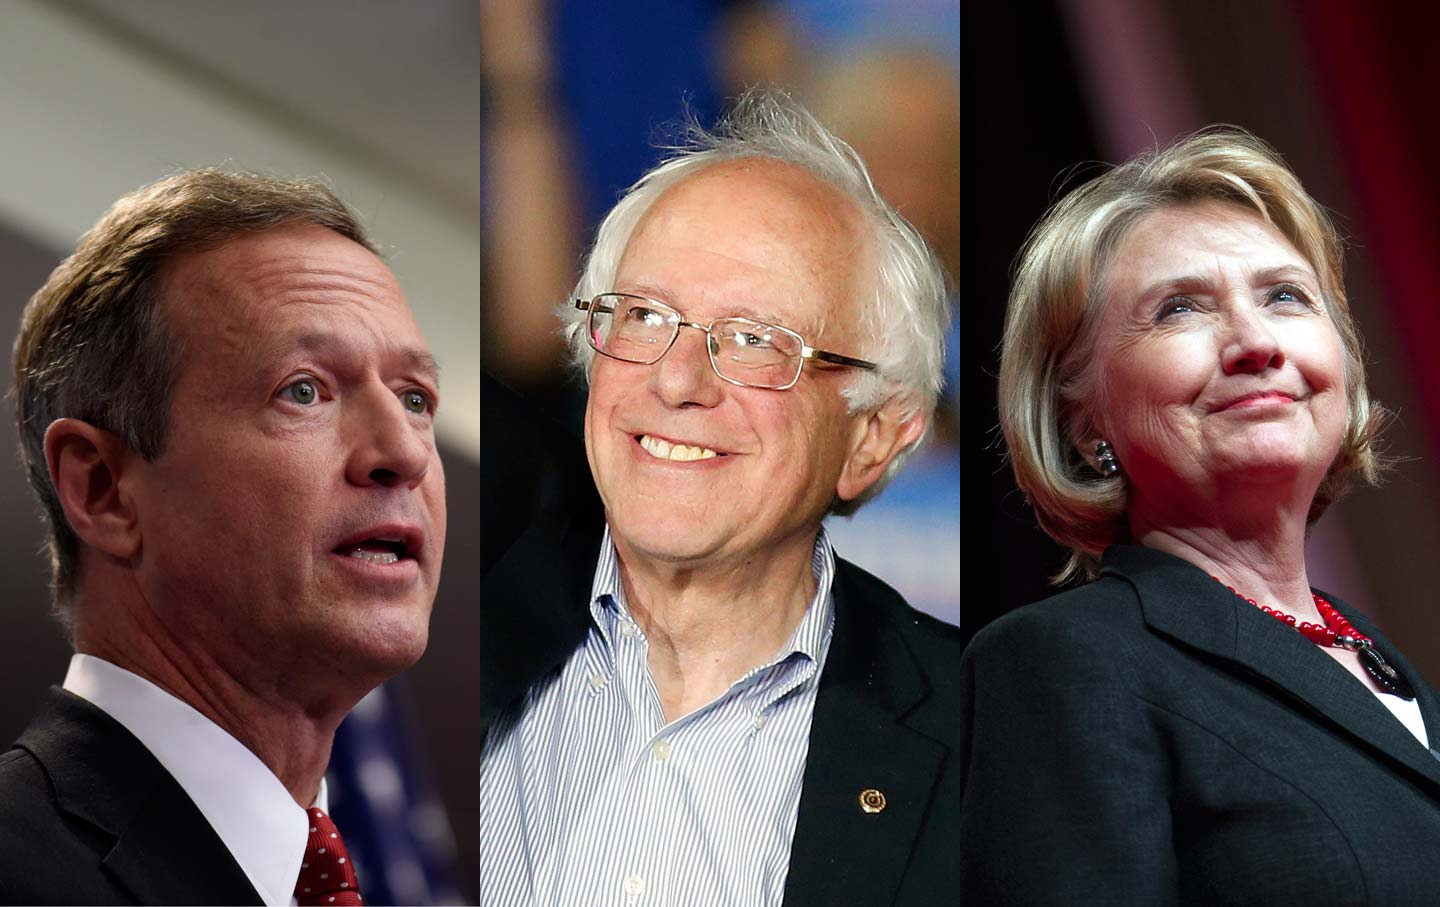 O'Malley, Sanders and Clinton